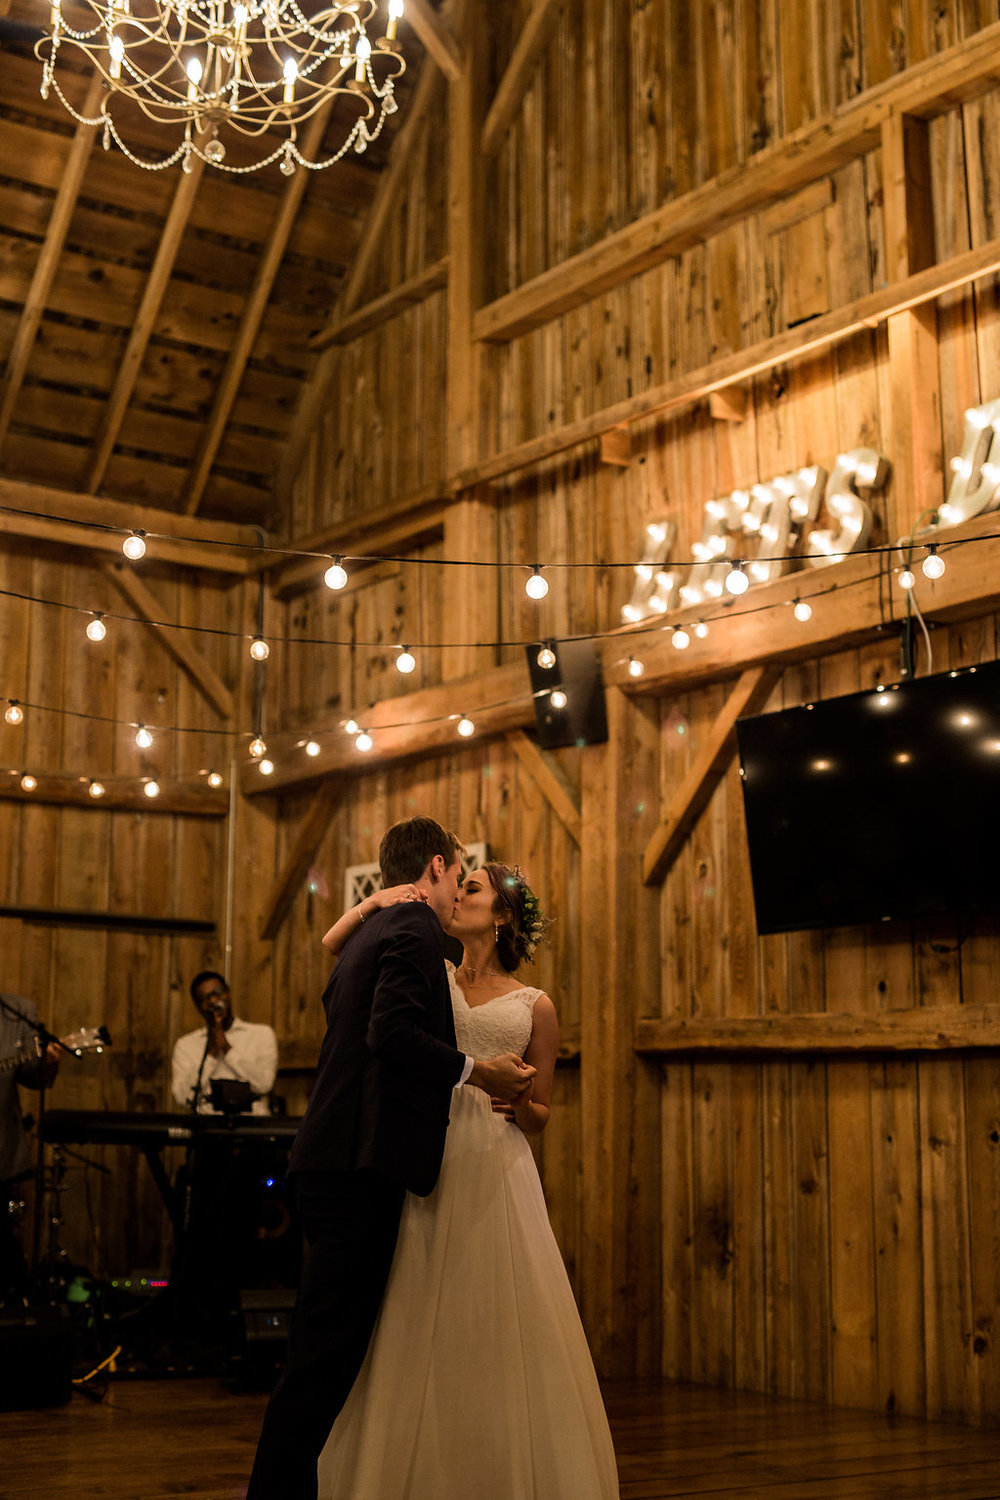 Sonshine_barn_northern_michigan_wedding_-88.jpg